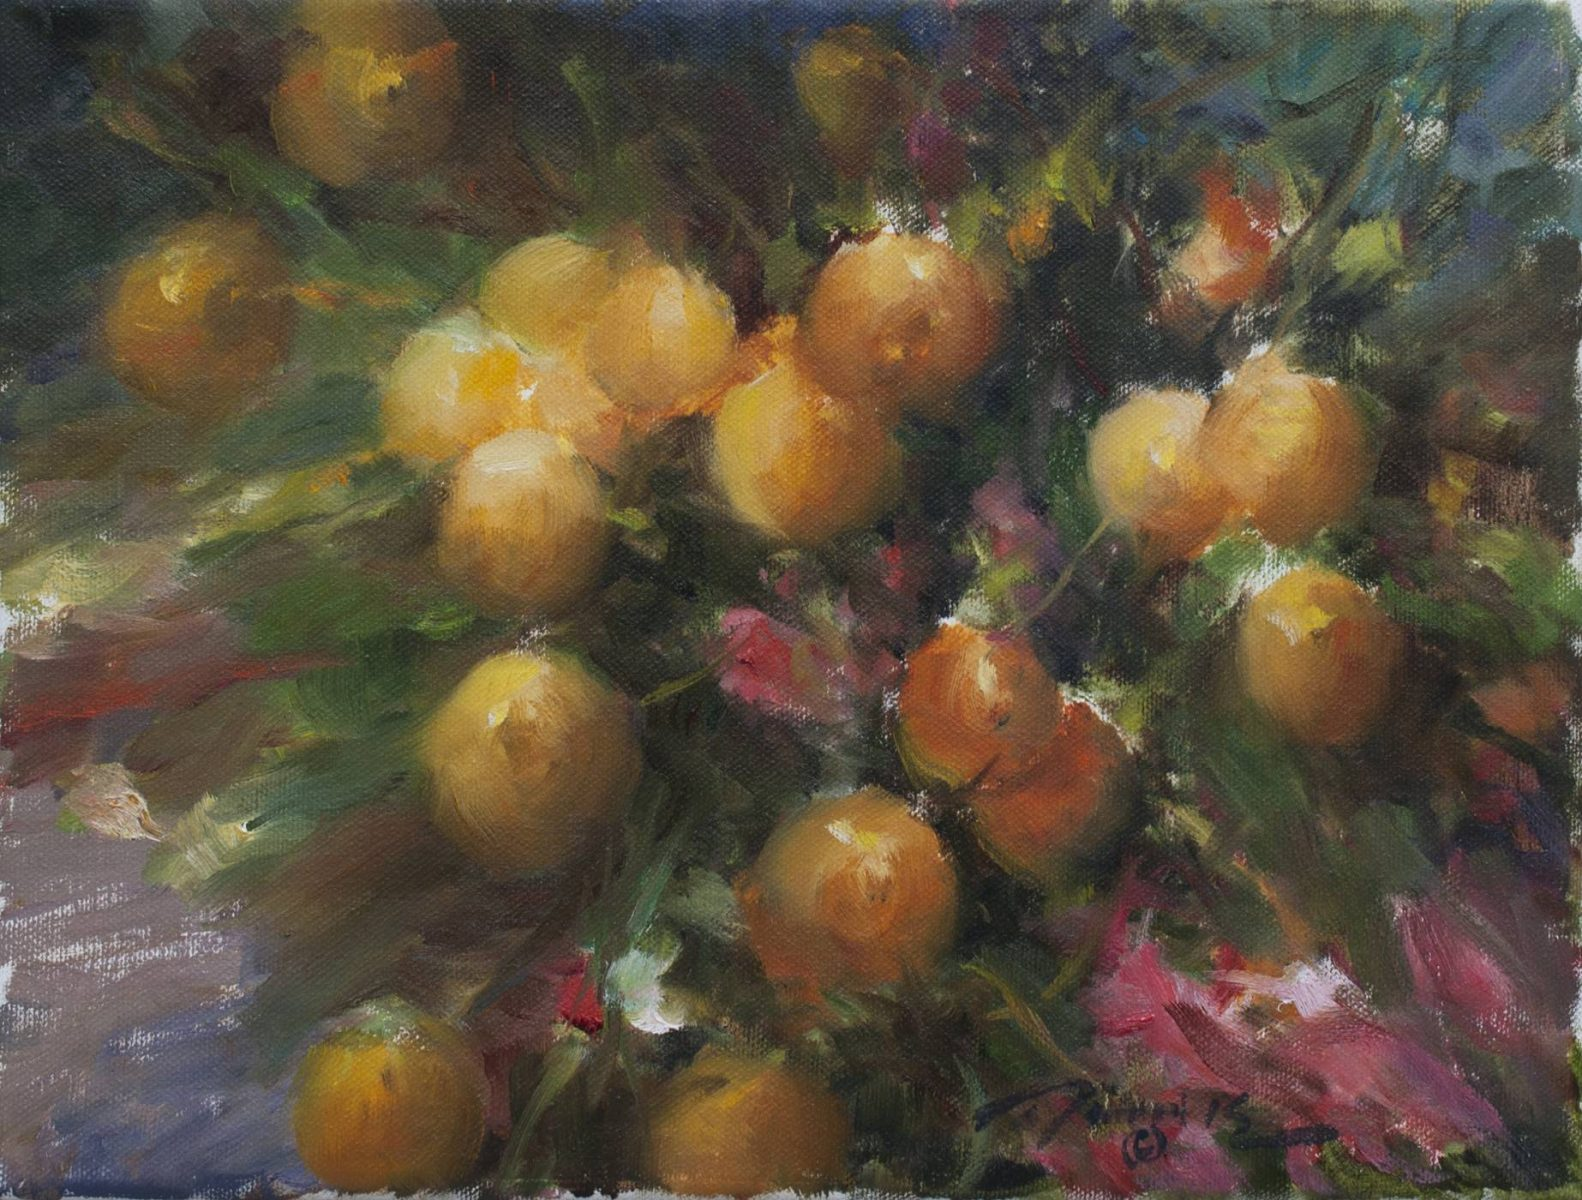 Spanish Oranges by Ramon Kelley